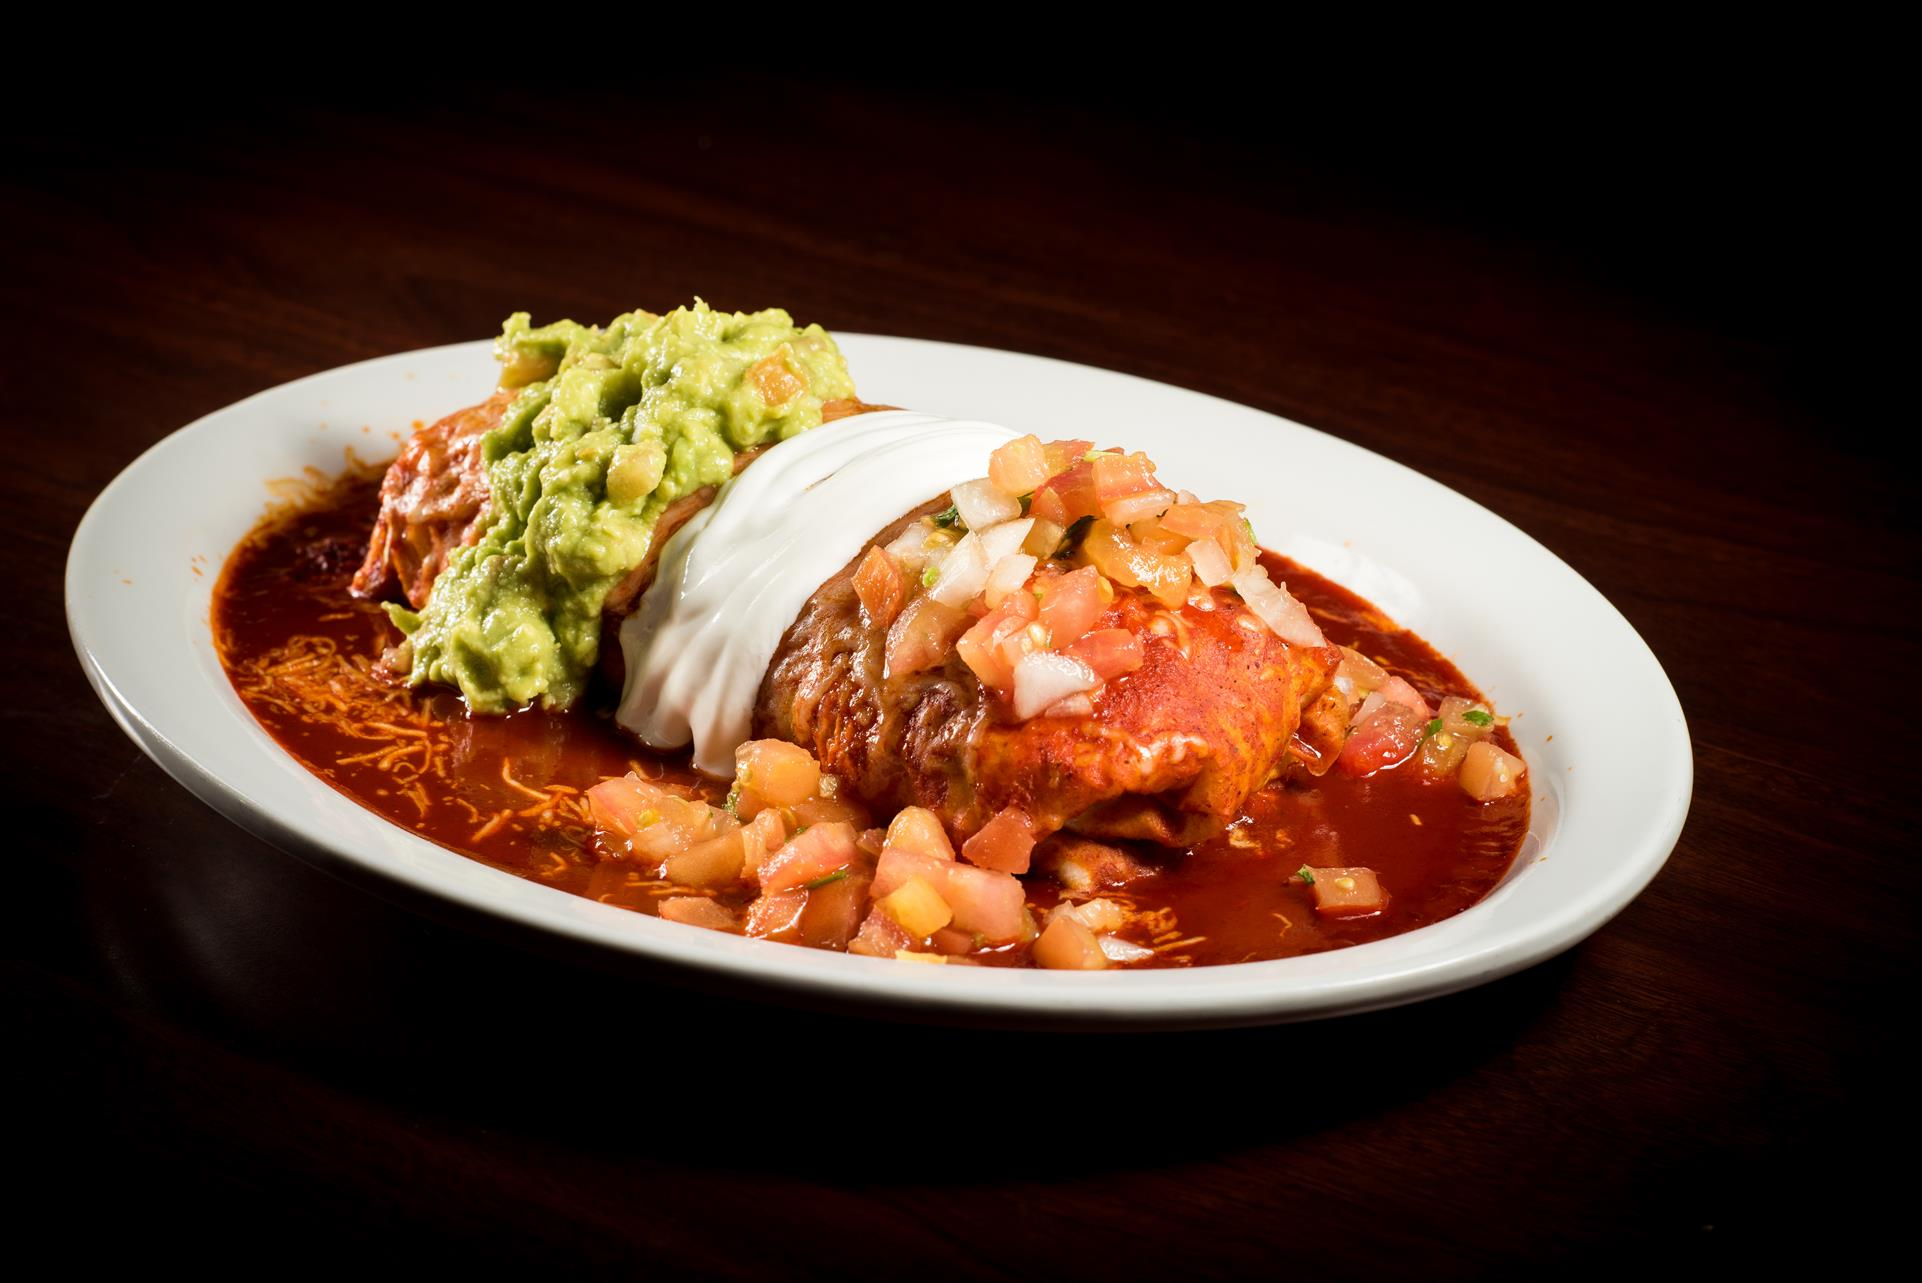 Wet Burrito: meat, whole beans and rice. Topped with our homemade enchilada sauce, cheese, sour cream and guacamole.